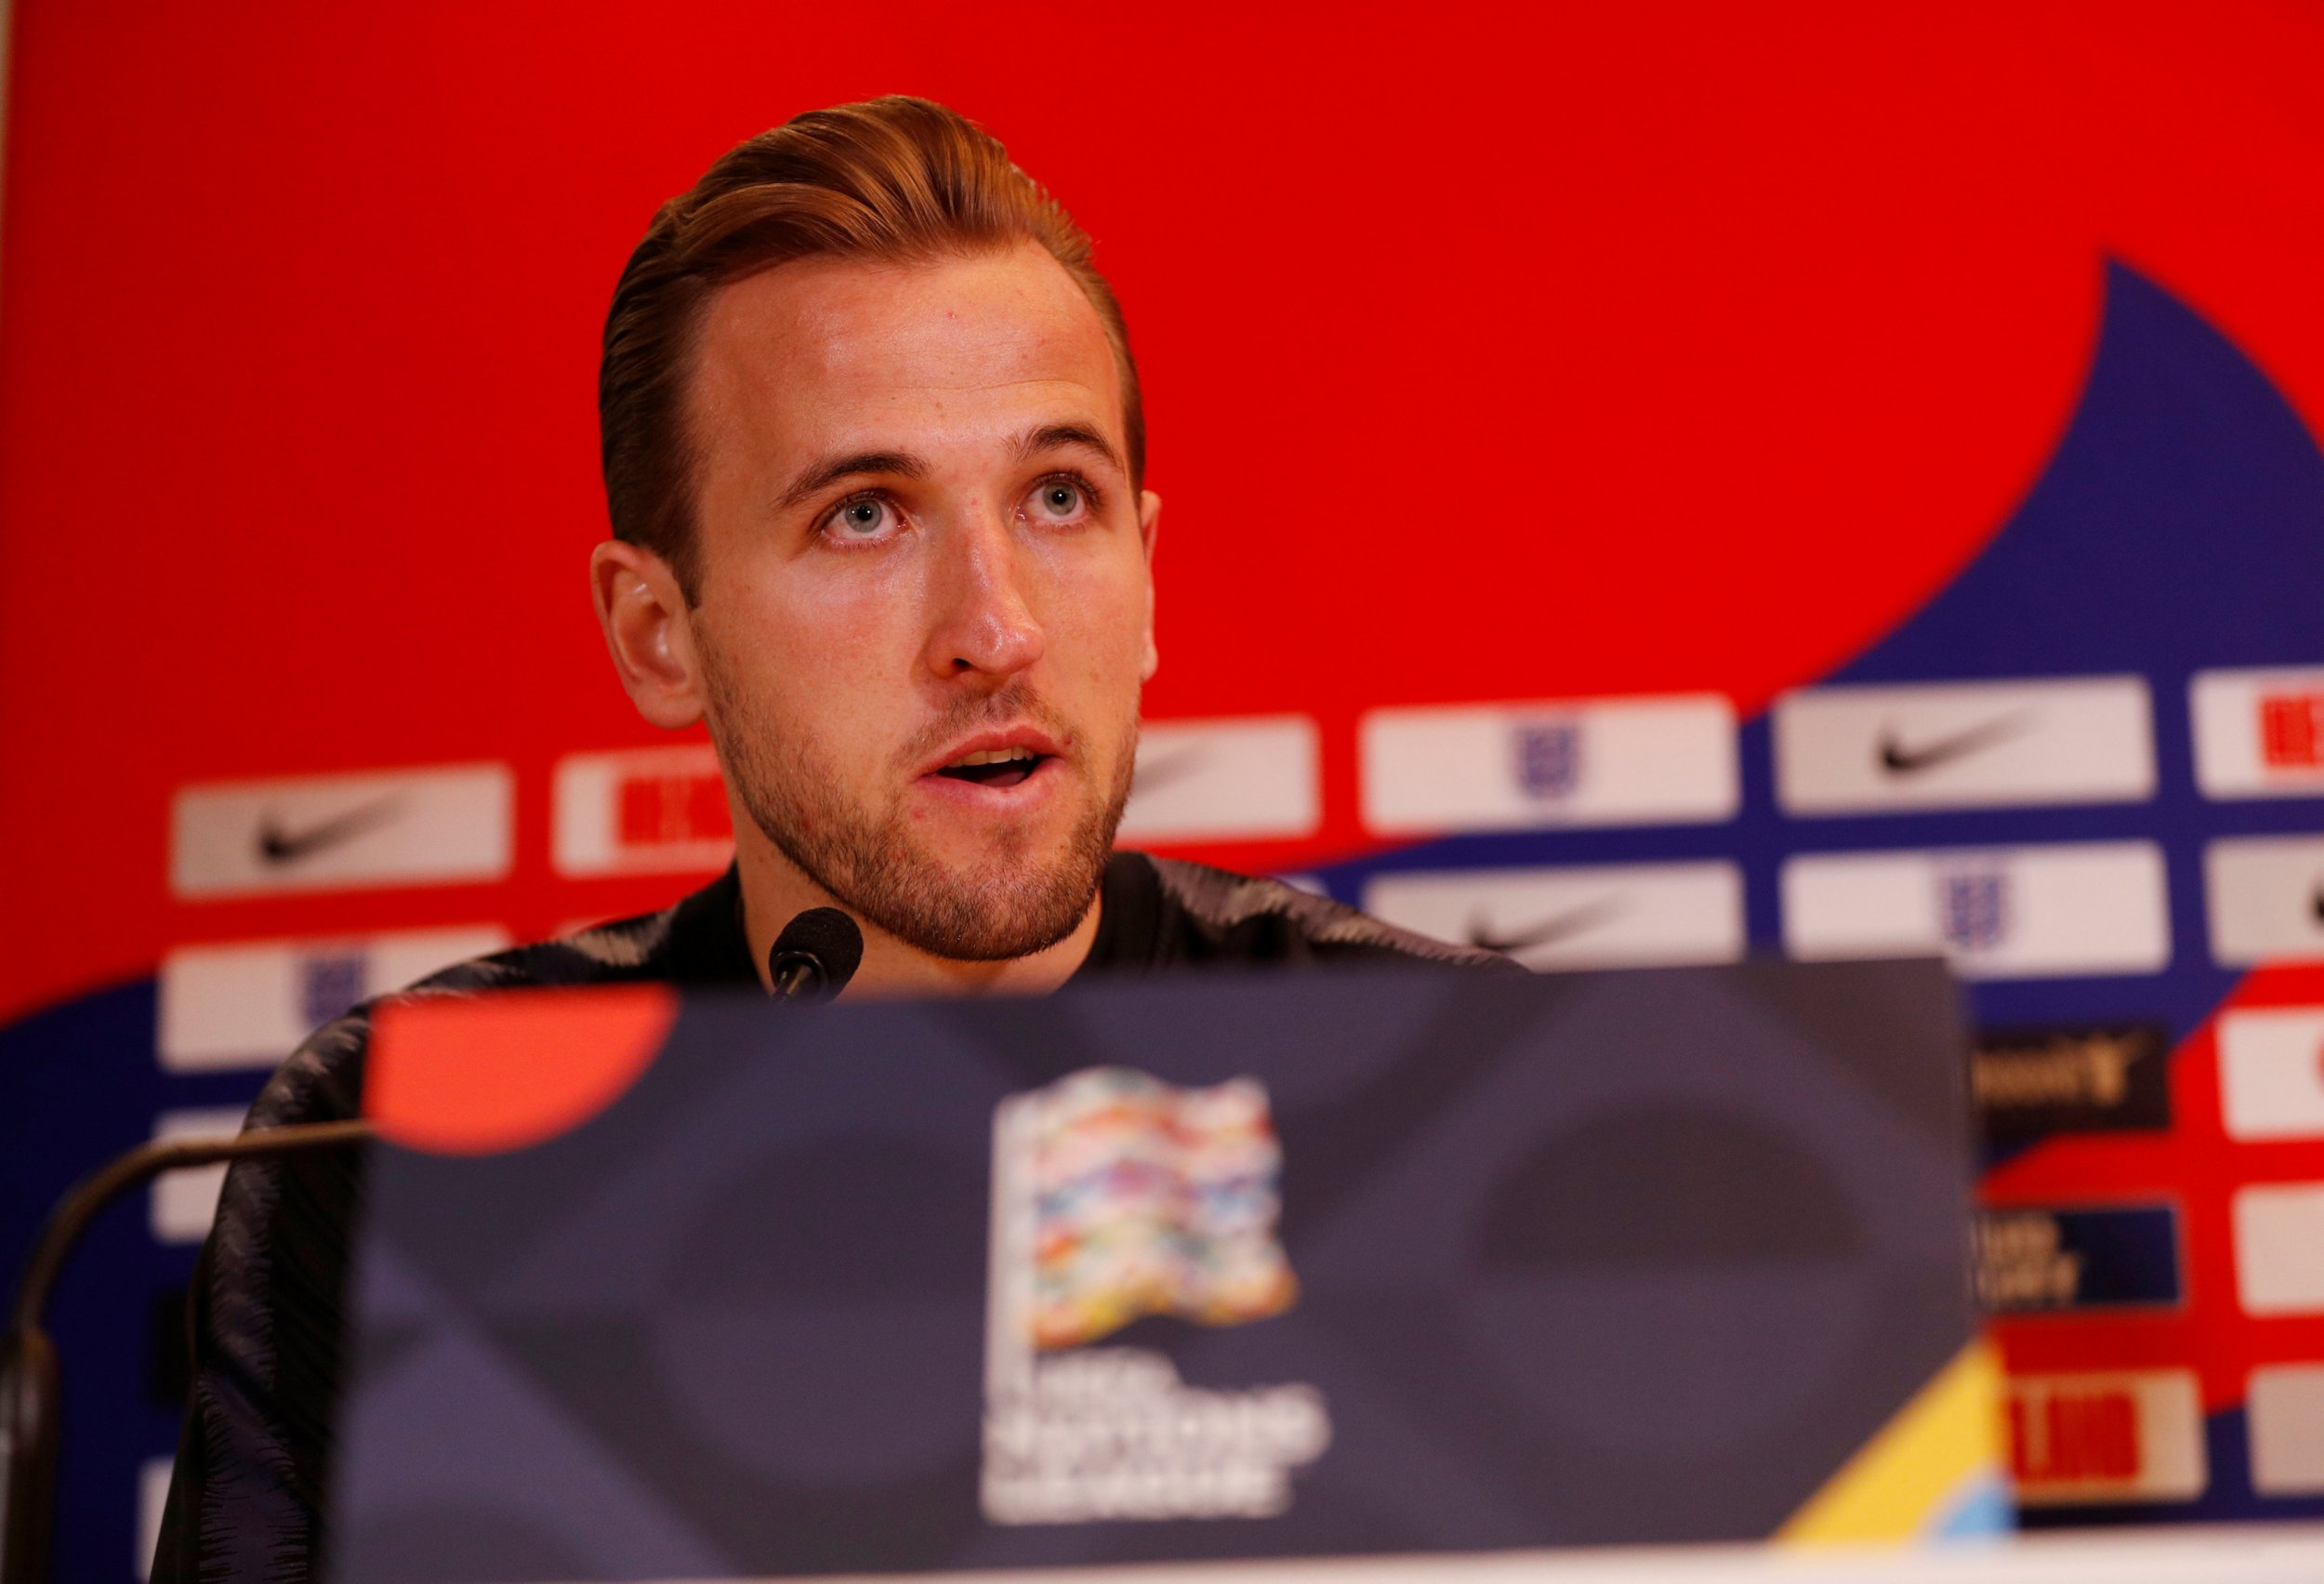 Harry Kane responds to Dejan Lovren's taunts ahead of England vs Croatia